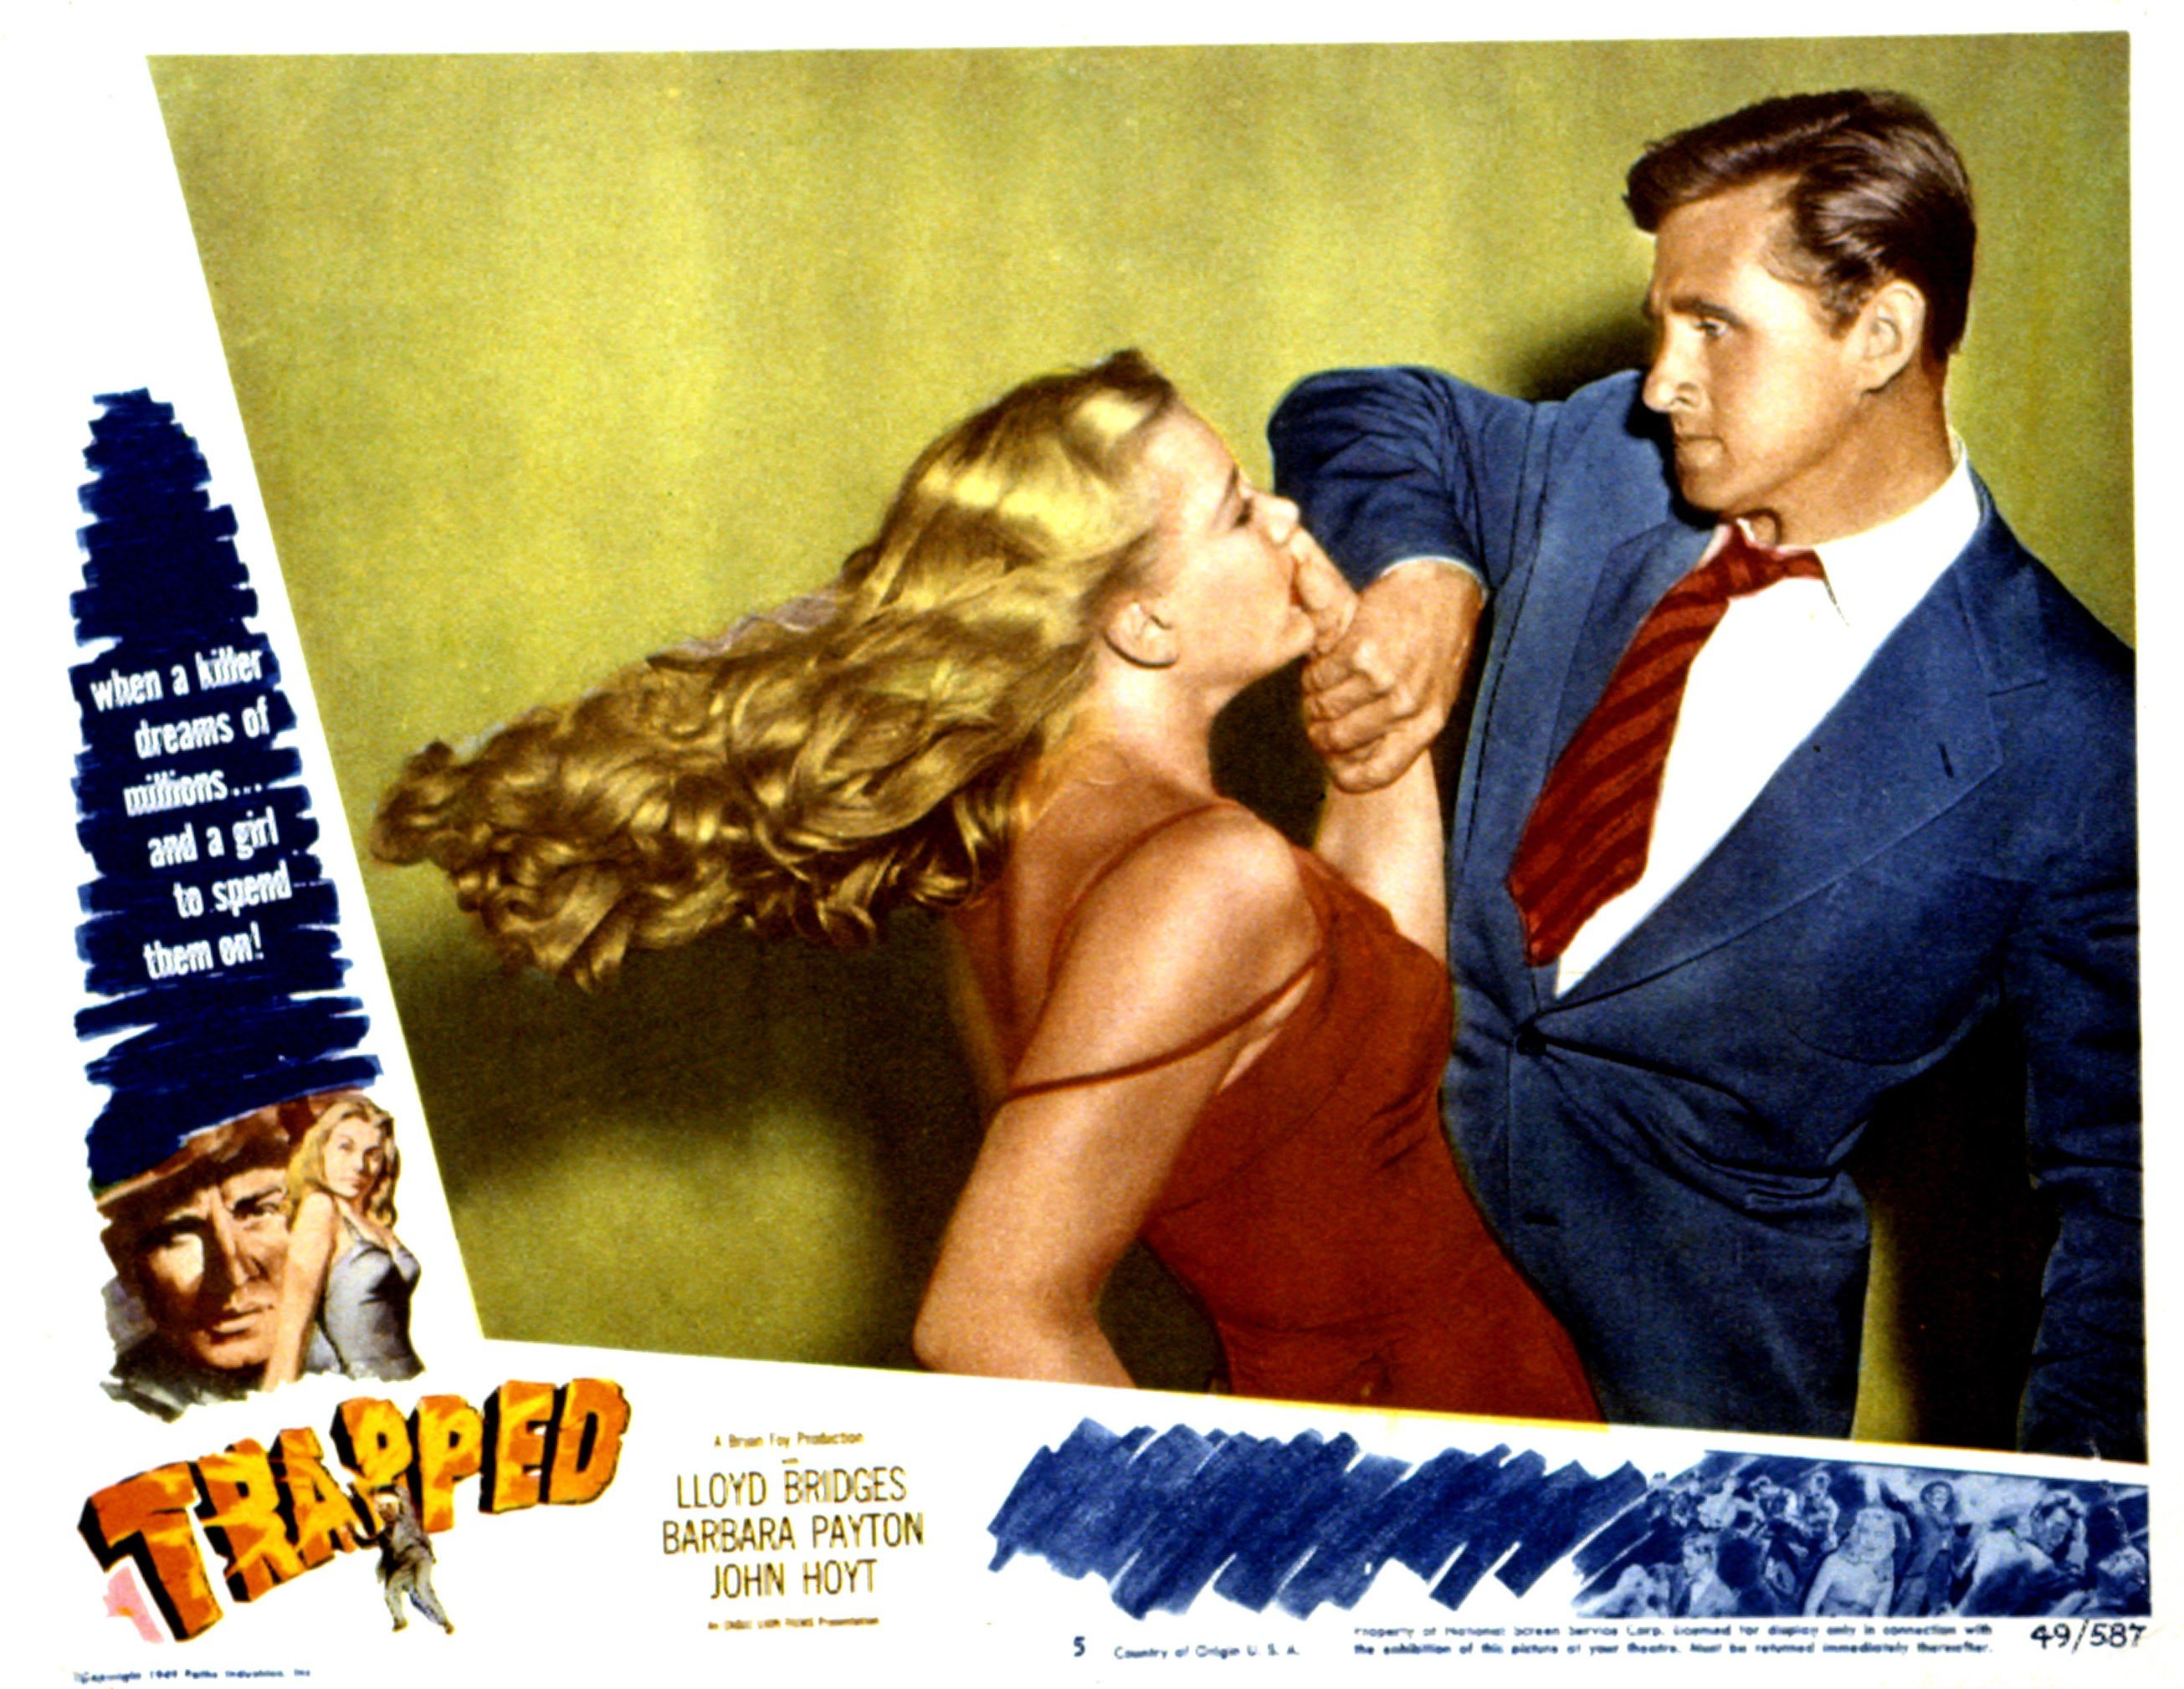 """A lobbycard from the movie """"Trapped"""" where Barbara Payton played the girlfriend to the lead actor, Lloyd Bridges, 1949 